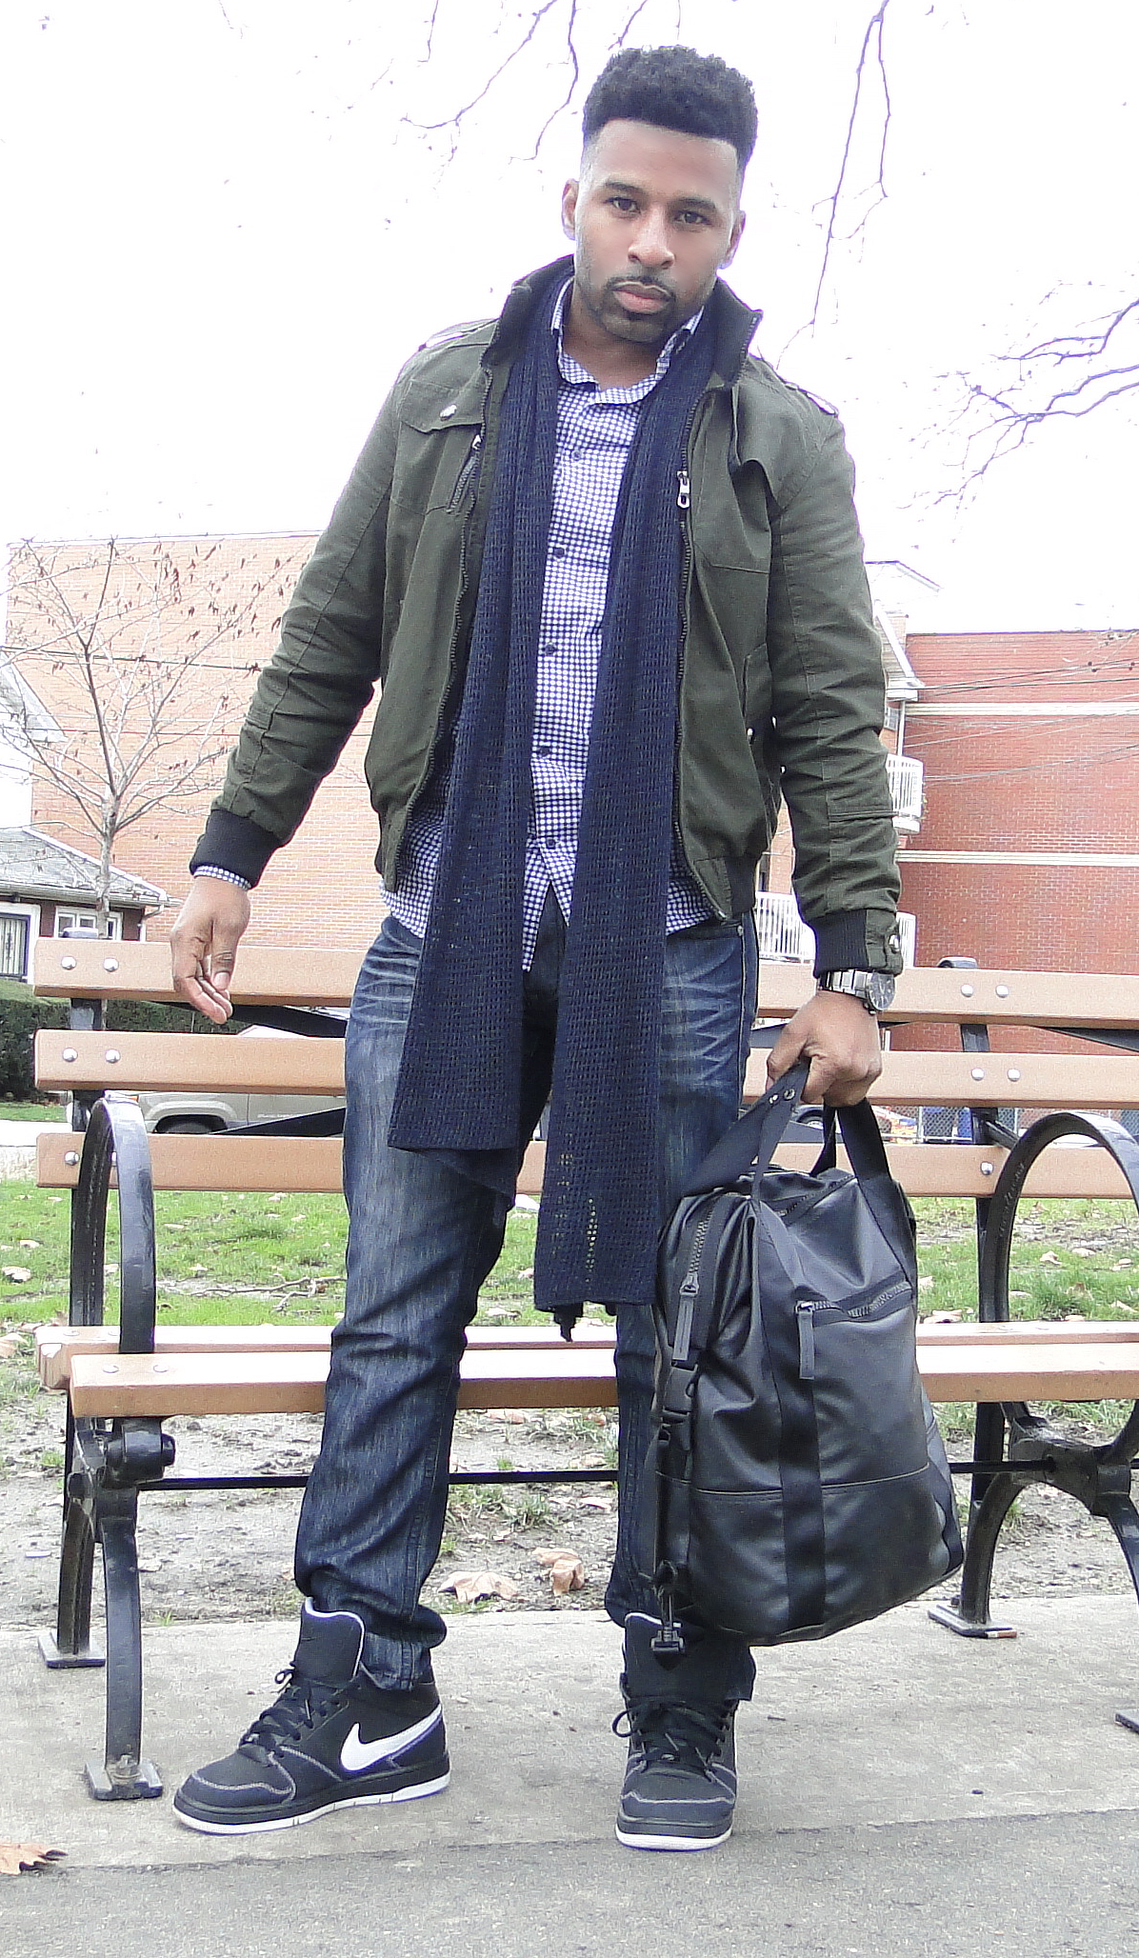 Fashion For Short Men: Winter Casual Ideas | ShortGuyCentral